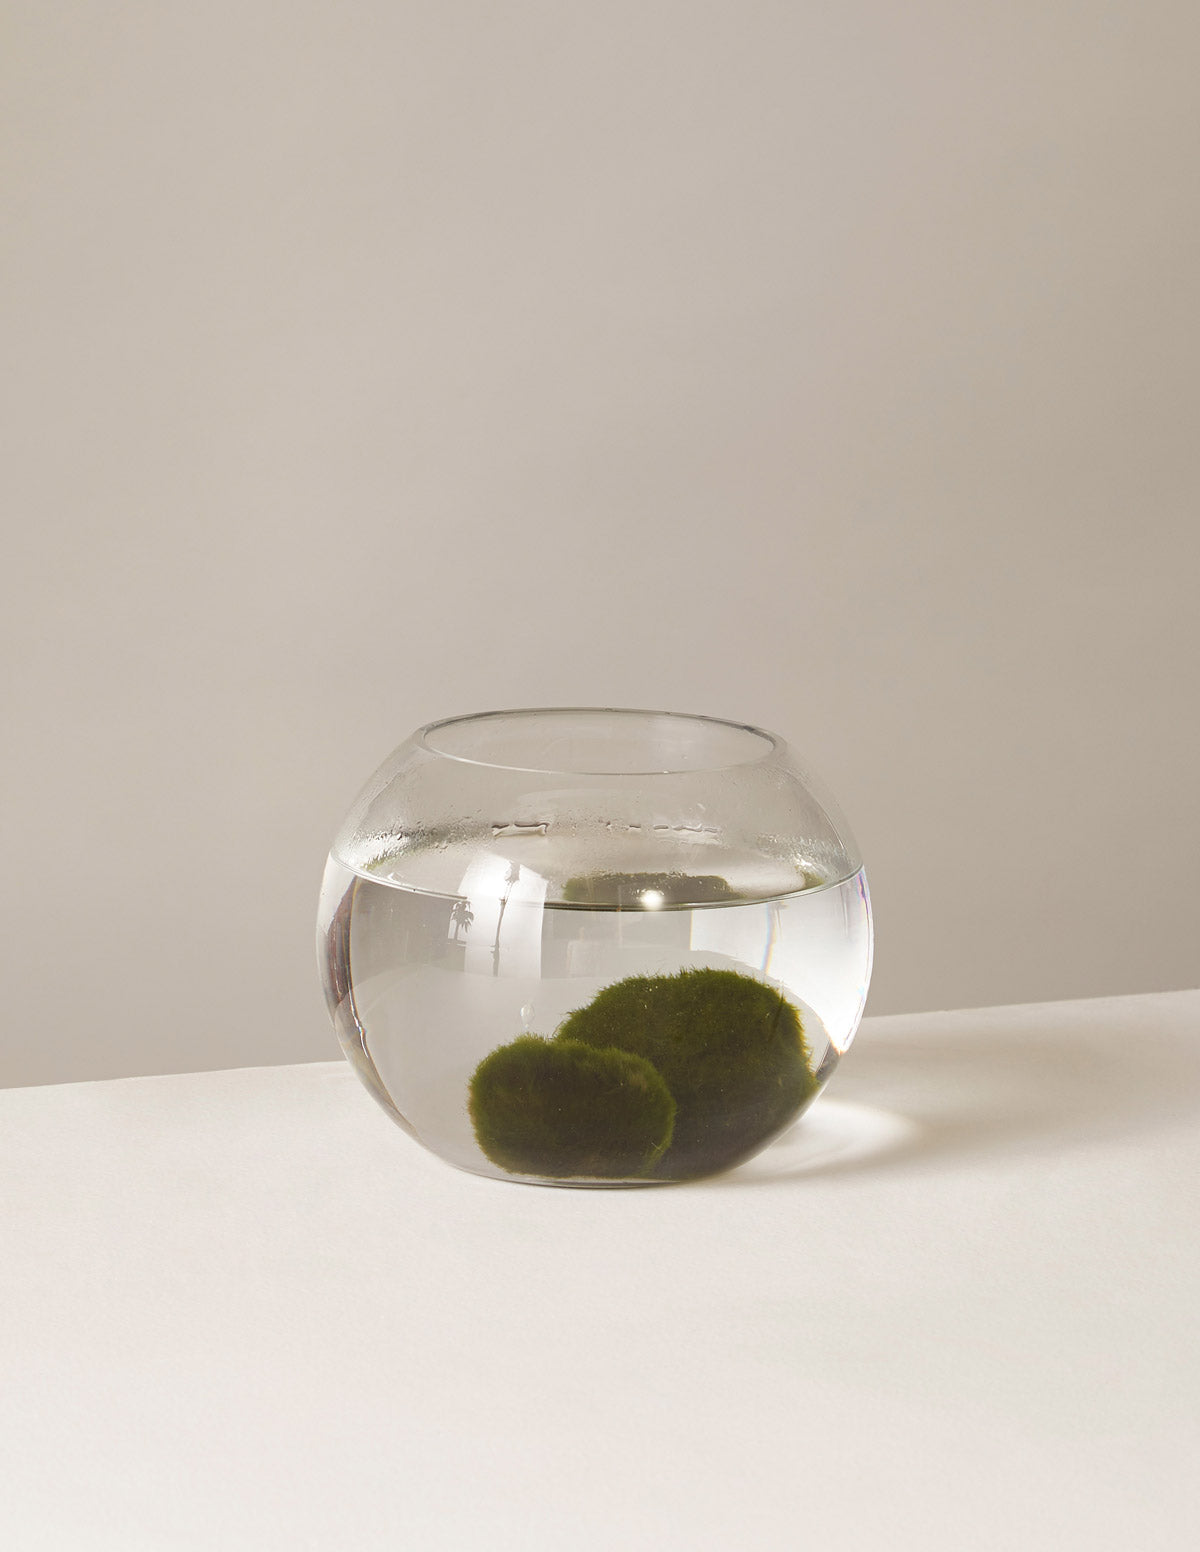 Marimo Moss Ball Kit